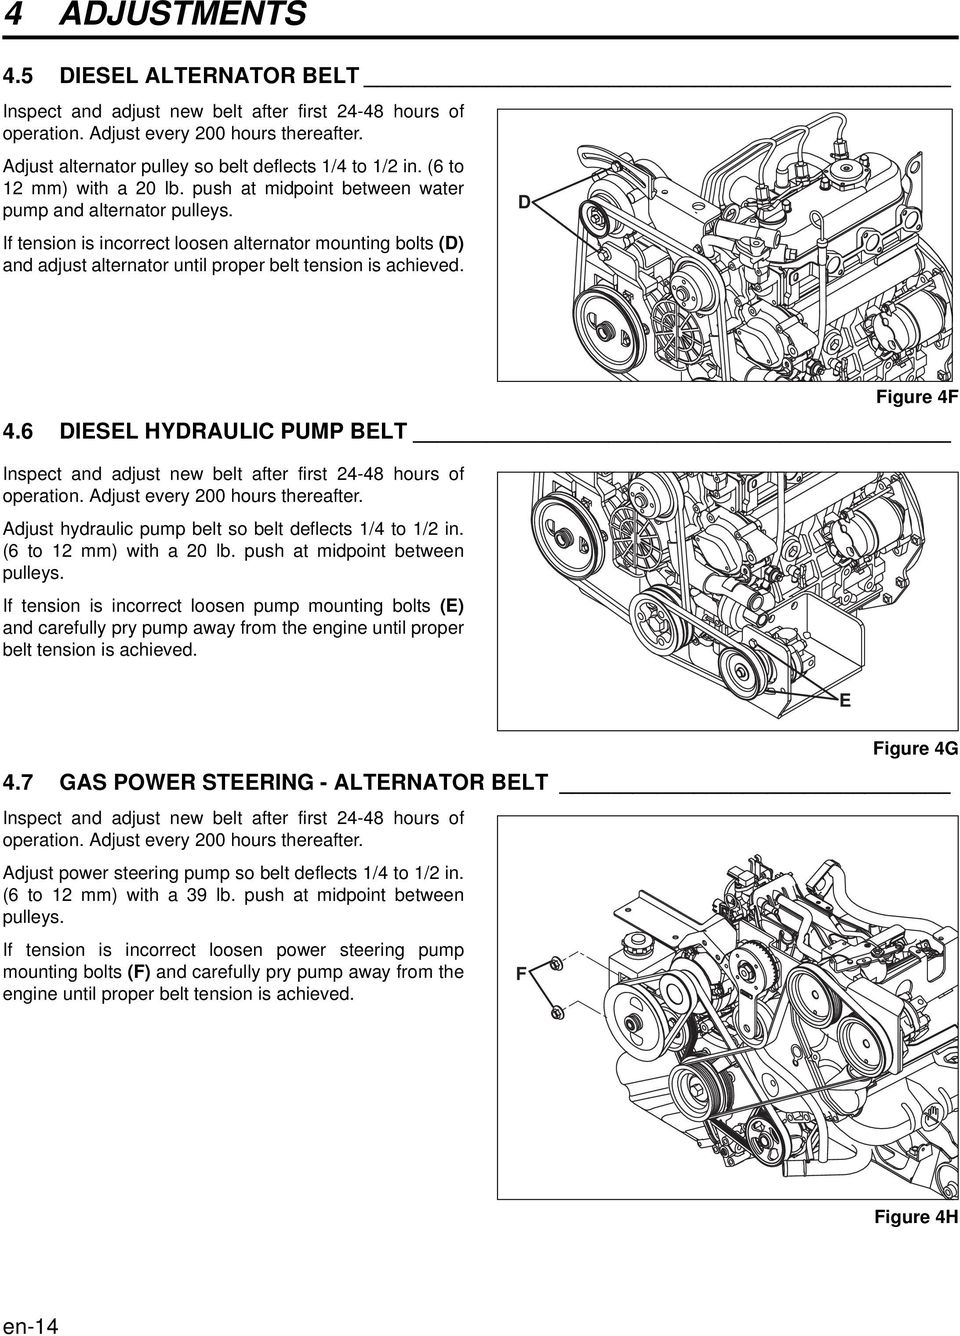 If tension is incorrect loosen alternator mounting bolts (D) and adjust alternator until proper belt tension is achieved. D Figure 4F 4.